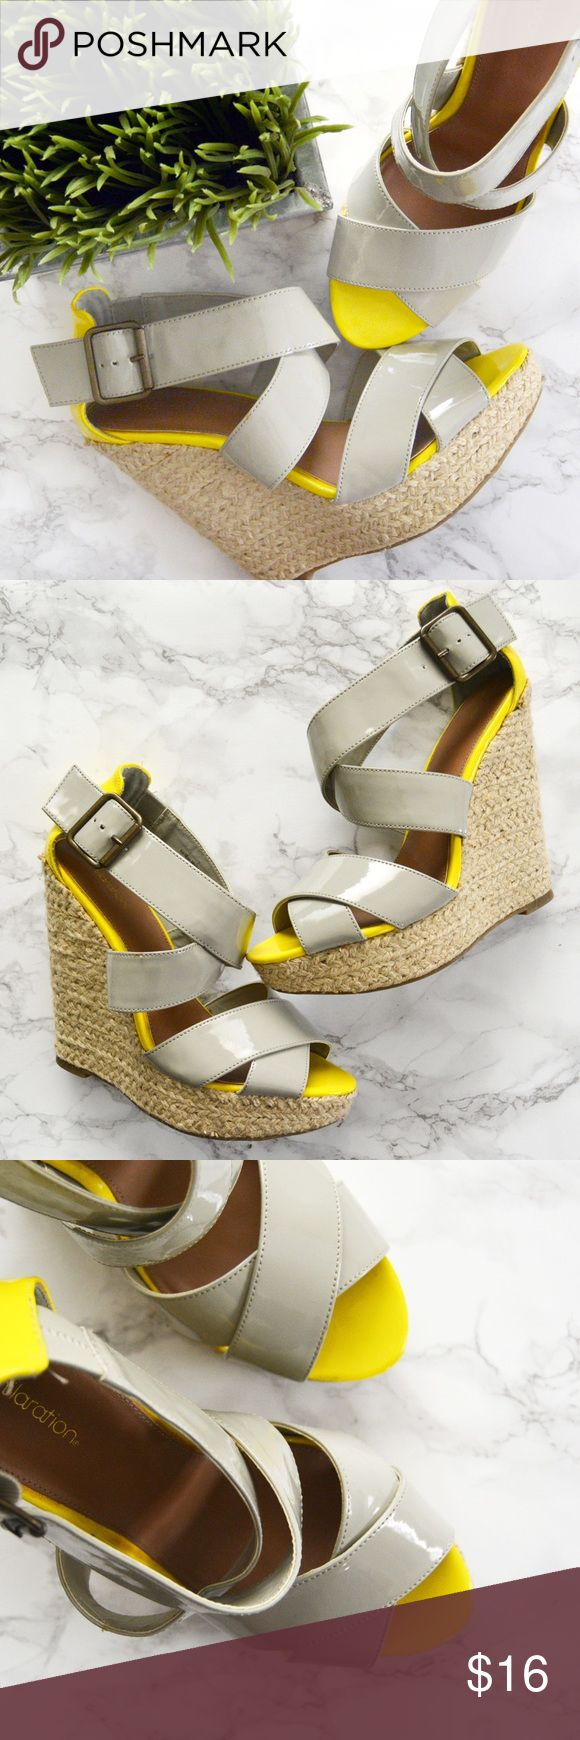 Yellow & Grey Espadrilles Summer just got better with these yellow & light grey espadrilles! Patent leather straps with a buckle clasp detail at the ankle and a woven platform heel. Perfect summer shoes! Size 7. Worn twice. Xhilaration Shoes Espadrilles